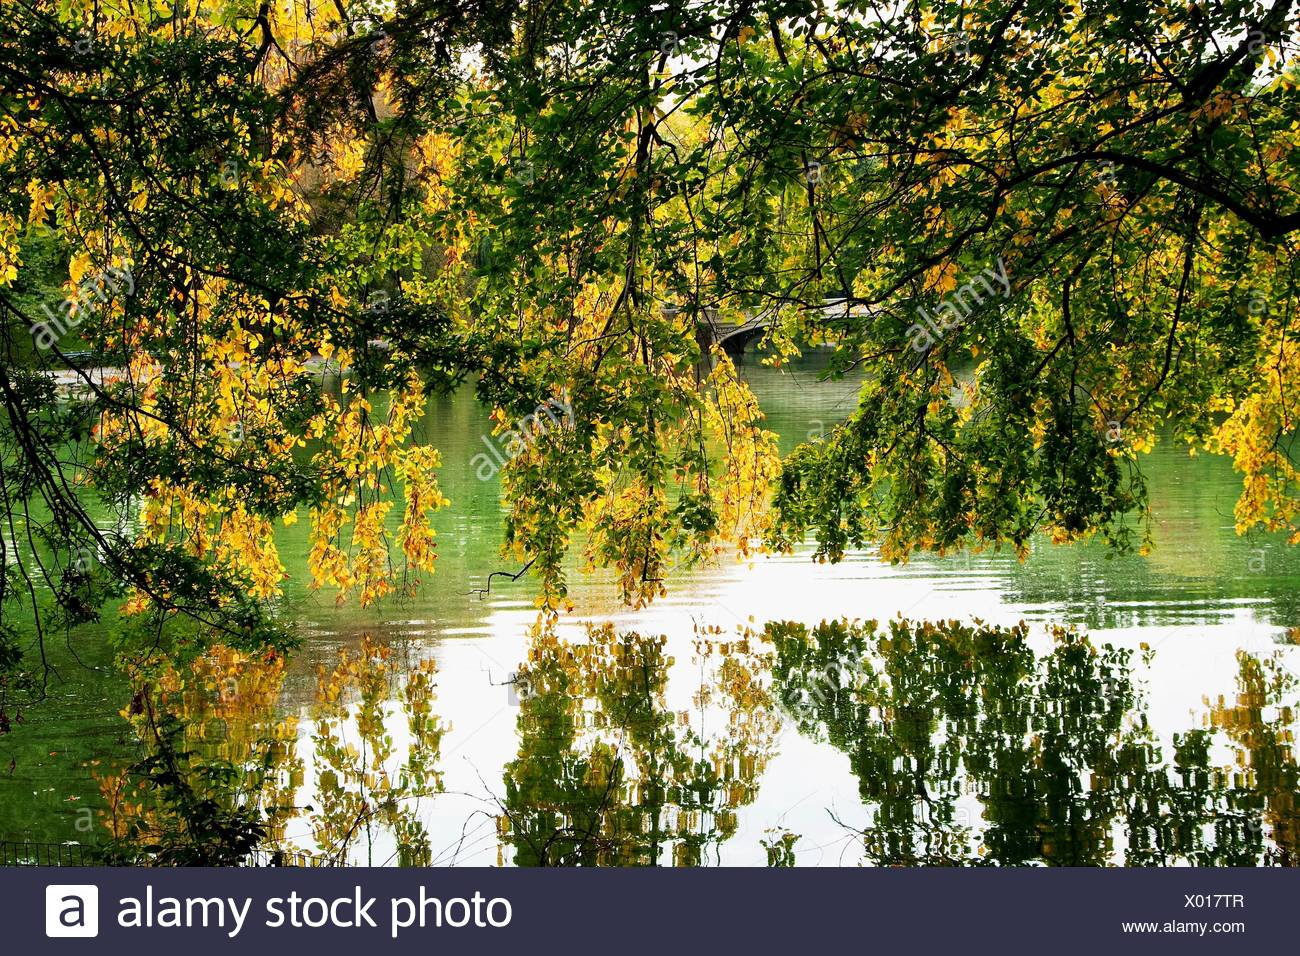 Beautiful green and yellow leaves hanging from tree branches over a ...